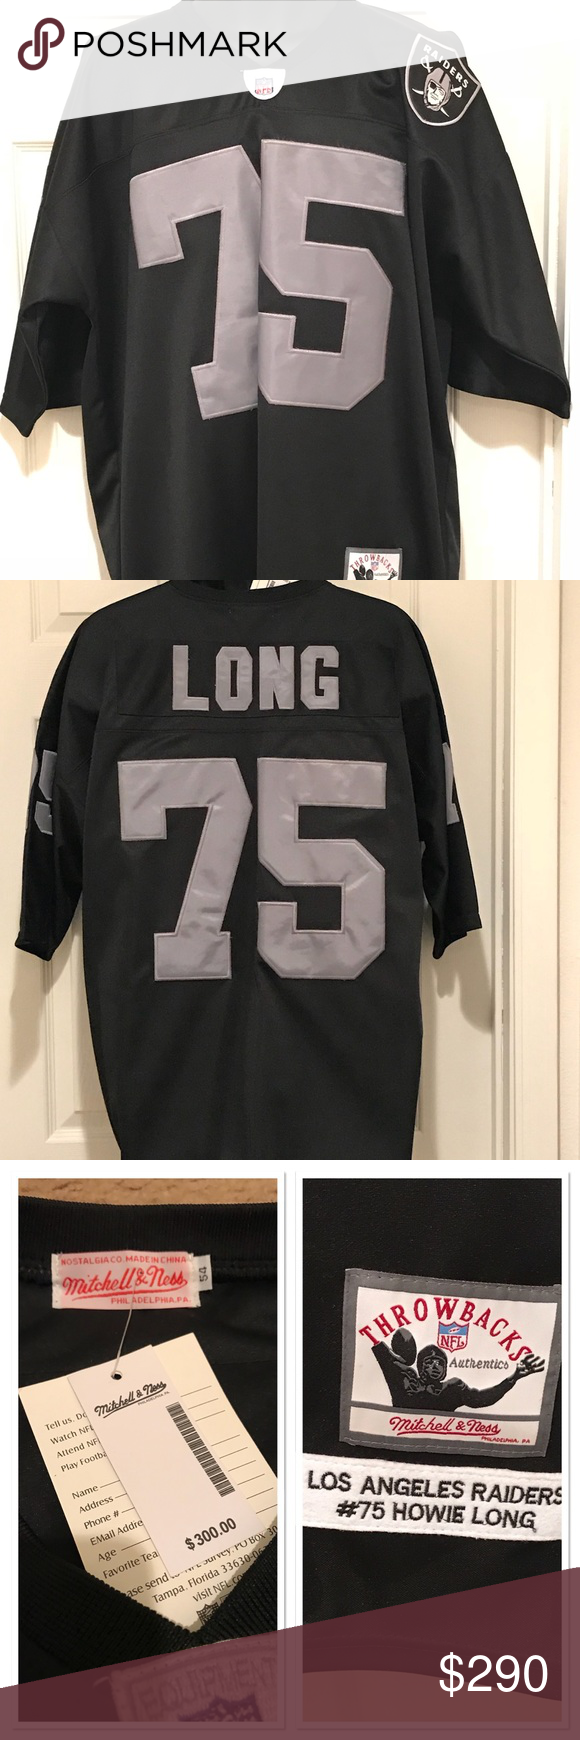 buy popular 5c3c3 5f00a HOWIE LONG THROW BACK RAIDERS JERSEY NWT MENS SIZE 54 ...